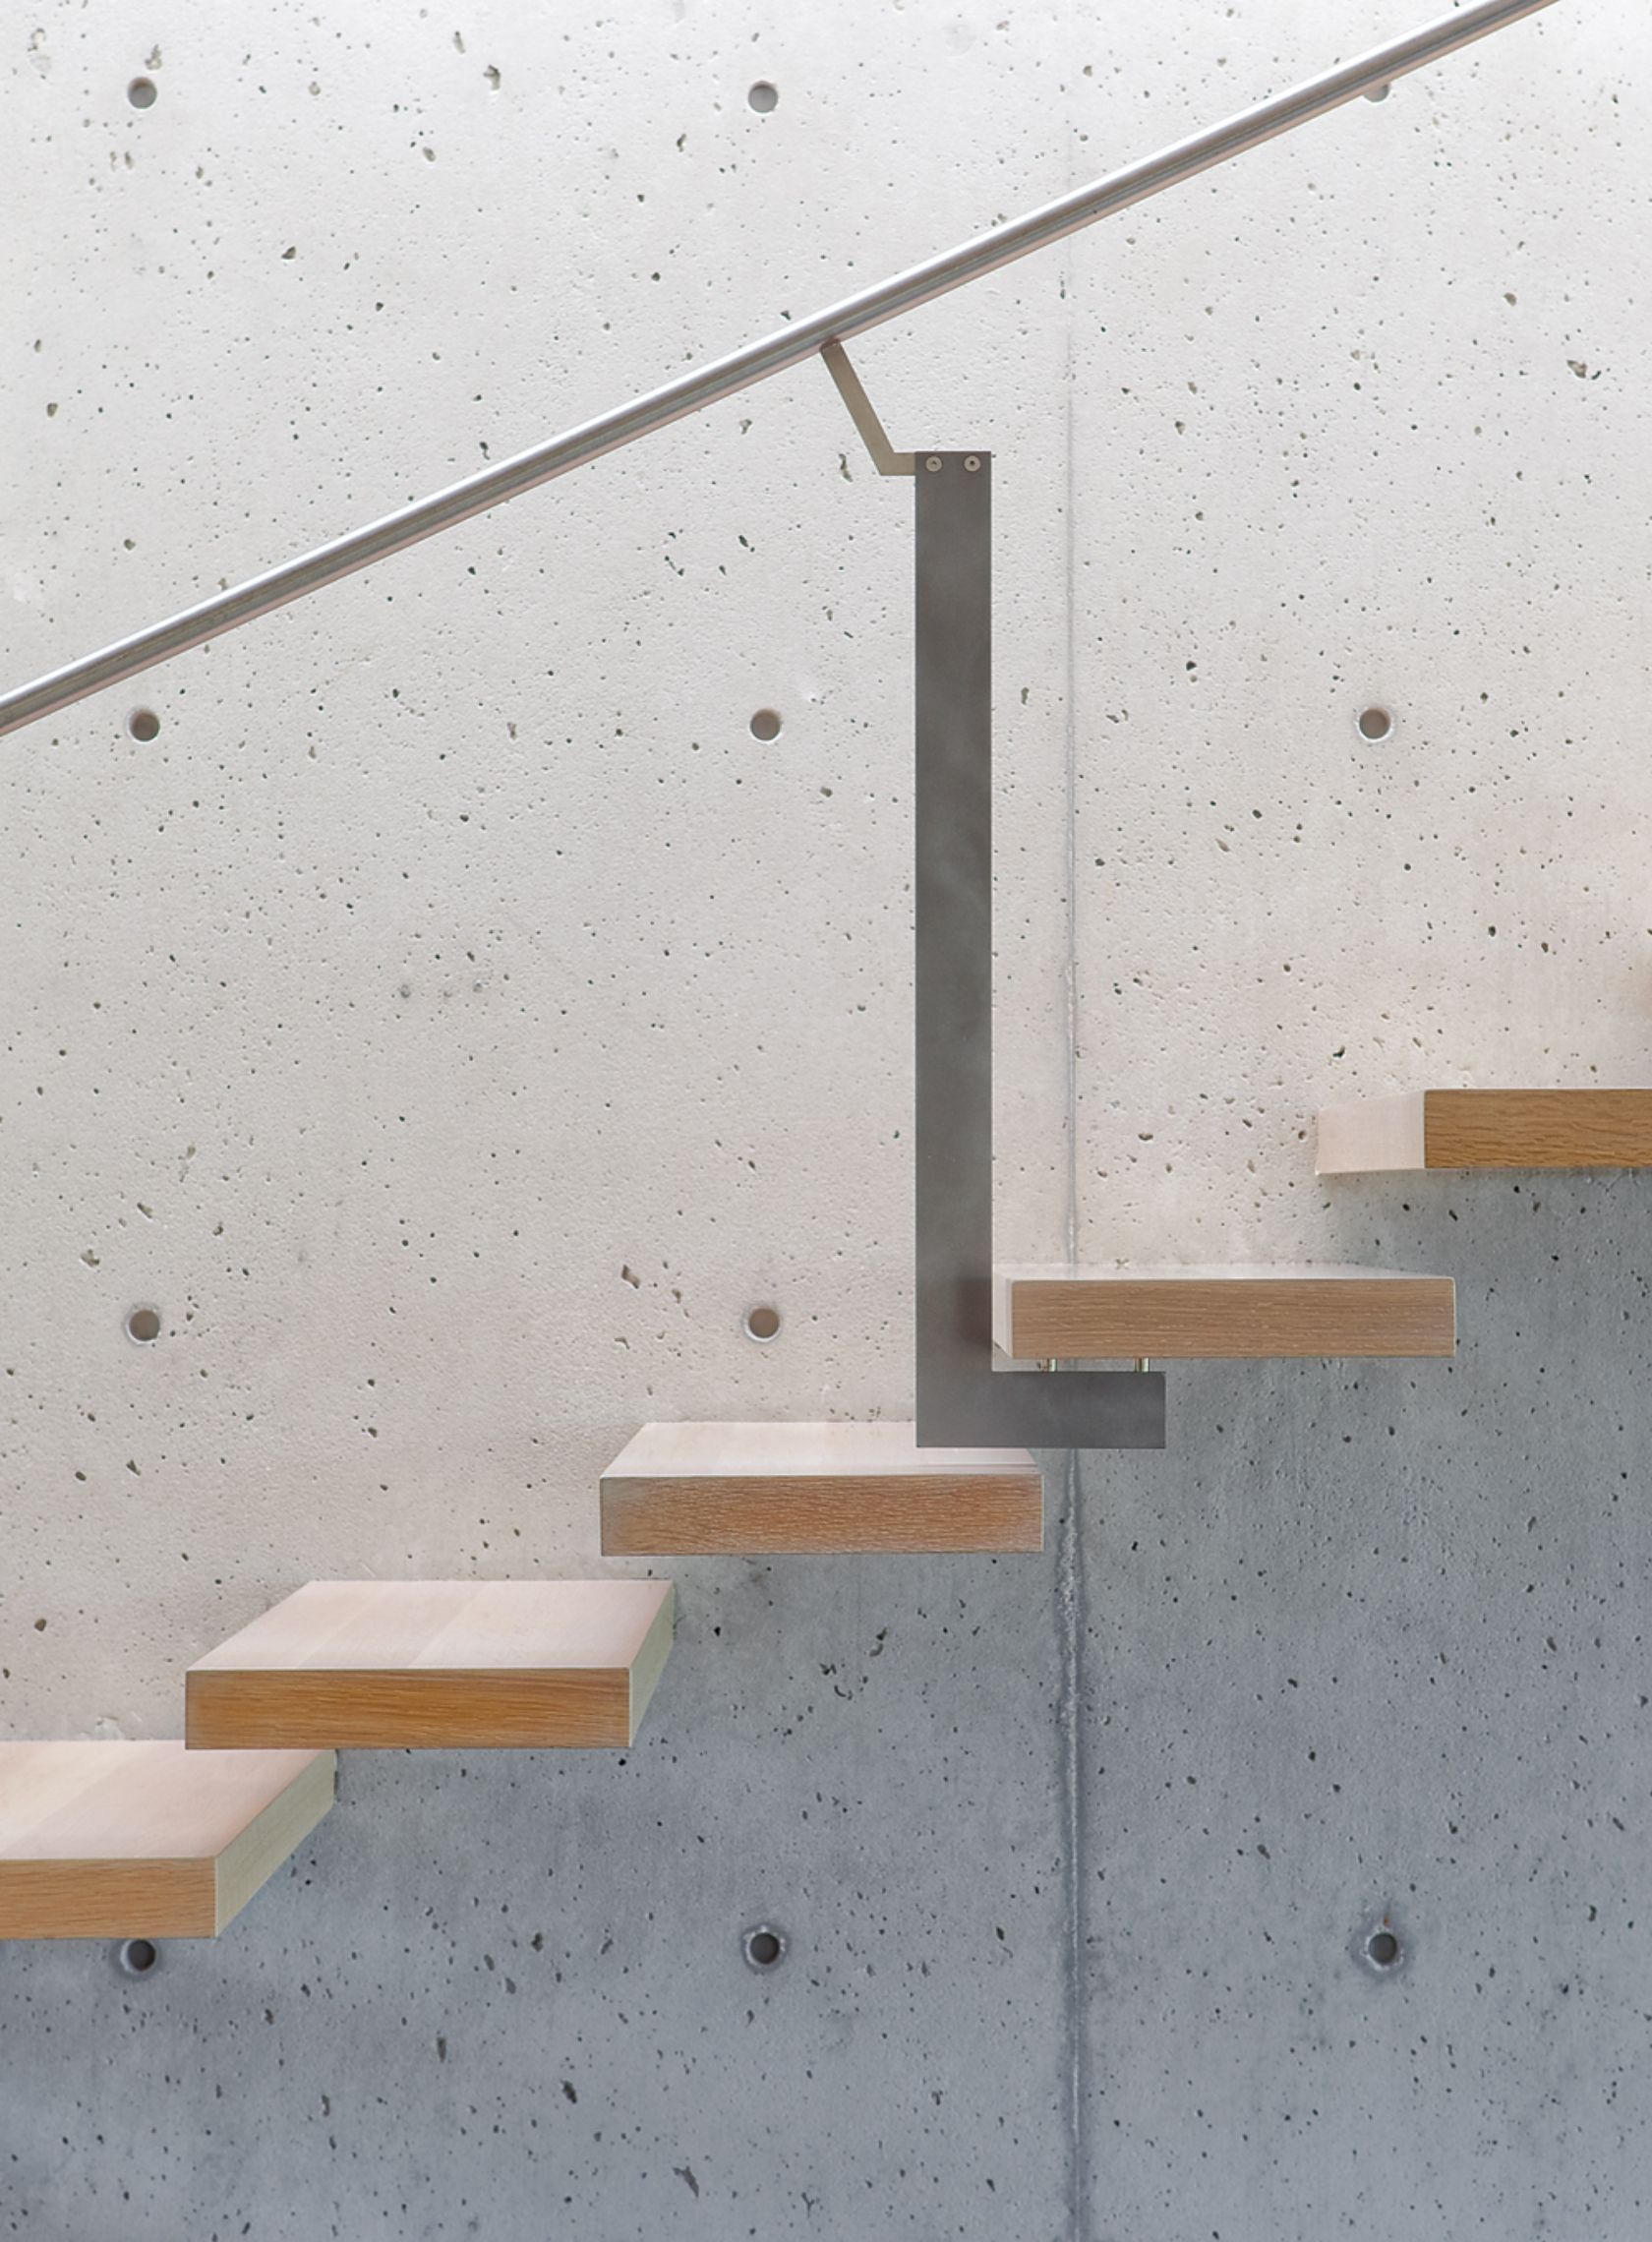 Stairs. Tolmie Residence. Vancouver, Canada. Batters by Howat.